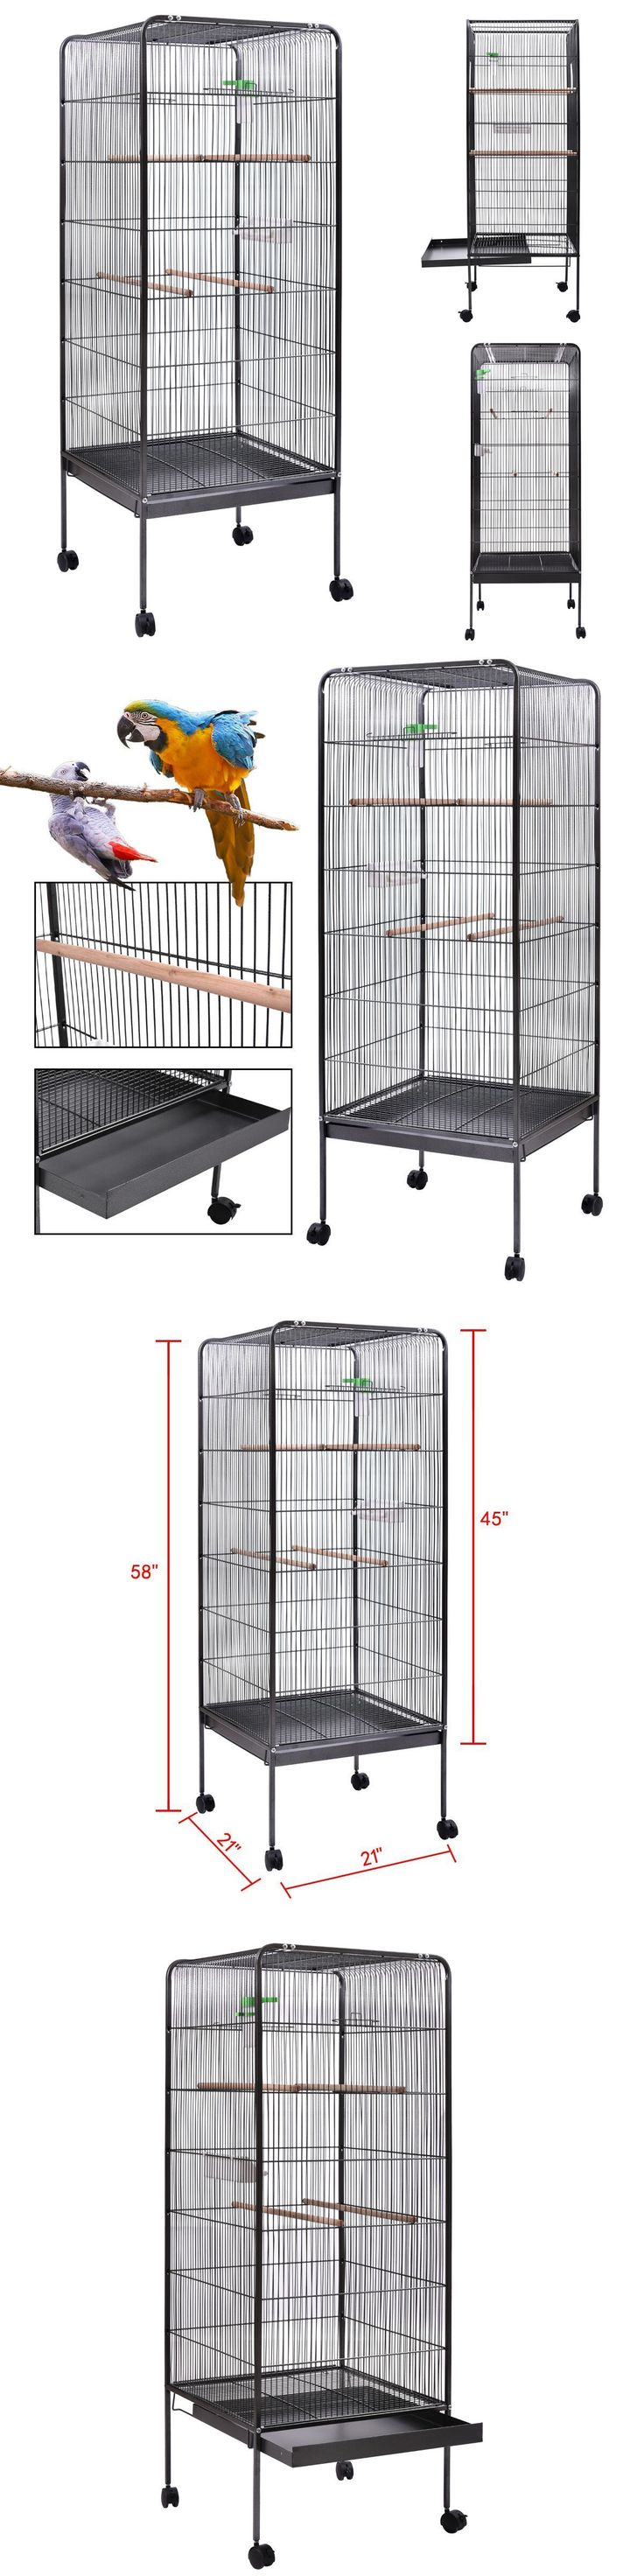 Cages 46289: 58 Flattop Parrot Finch Cage Play Top Pet Supplies W/Perch Stand Two Doors -> BUY IT NOW ONLY: $57.59 on eBay!